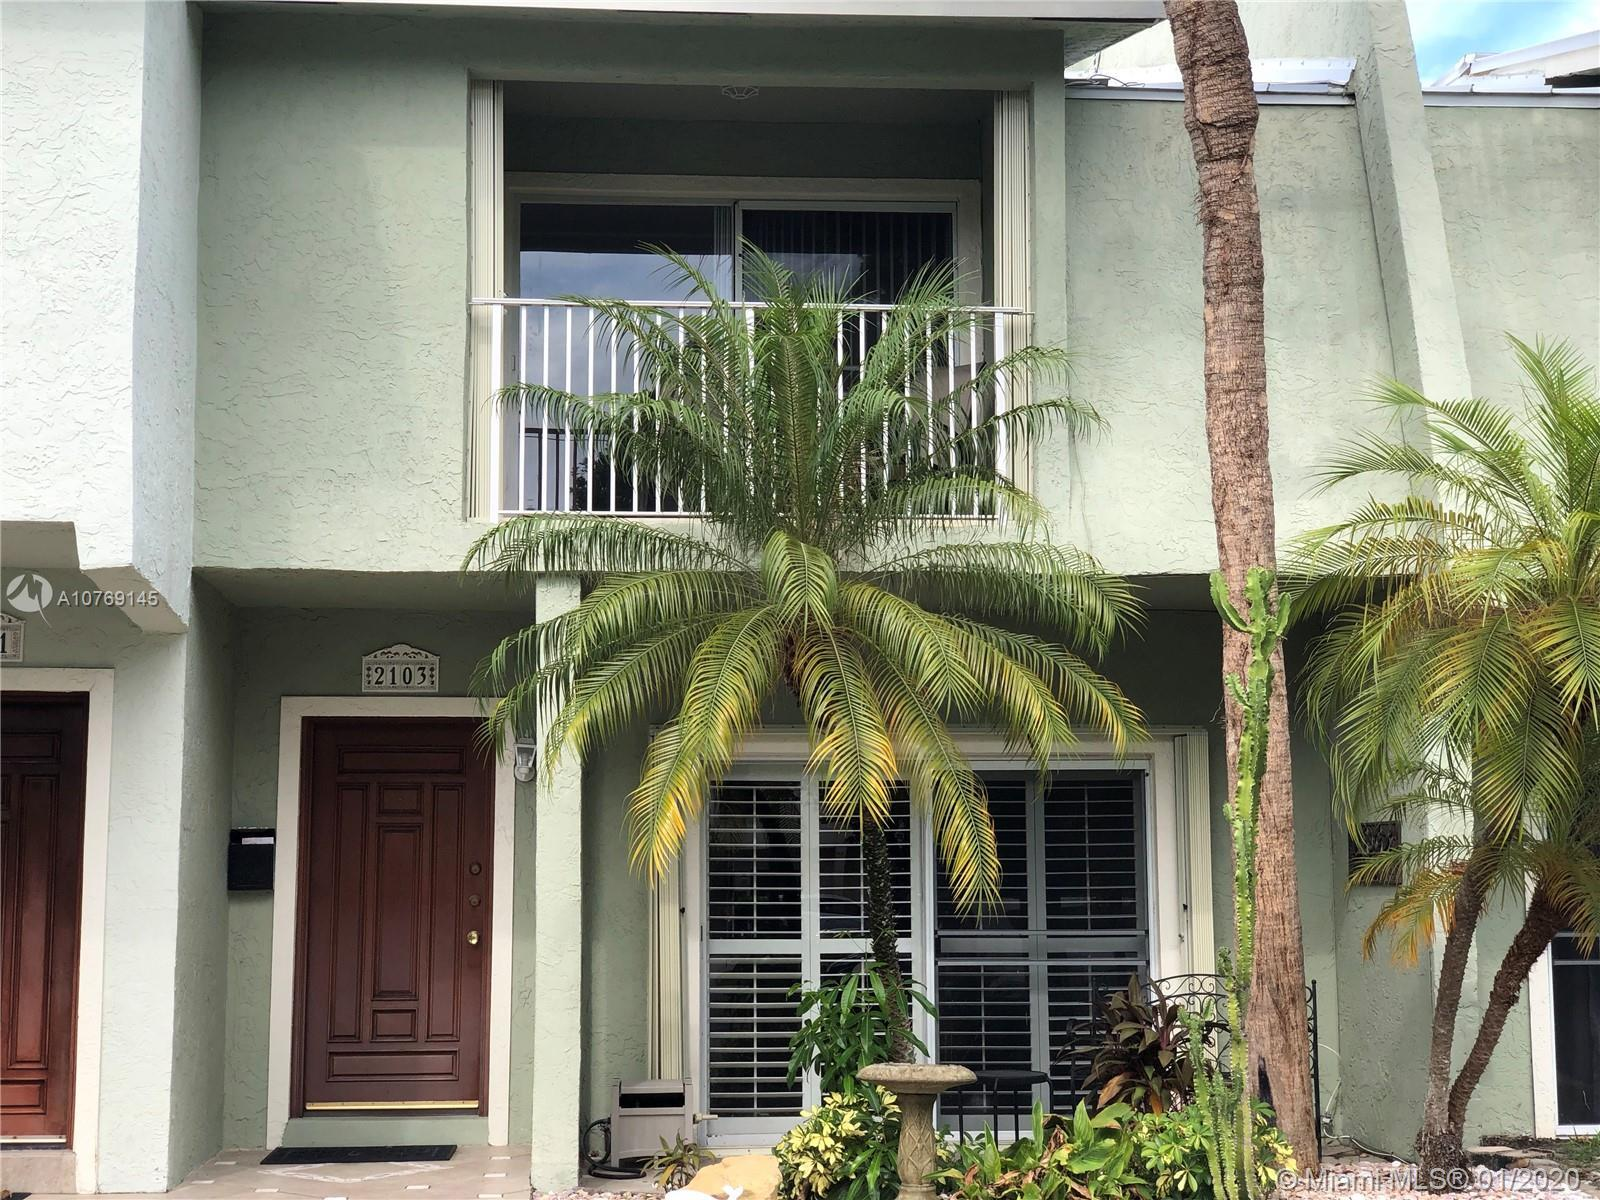 WATERFRONT OCEAN ACCESS! 2 Bed 2 1/2 Bath Townhouse on Canal in Beautiful Lighthouse Point. If you h